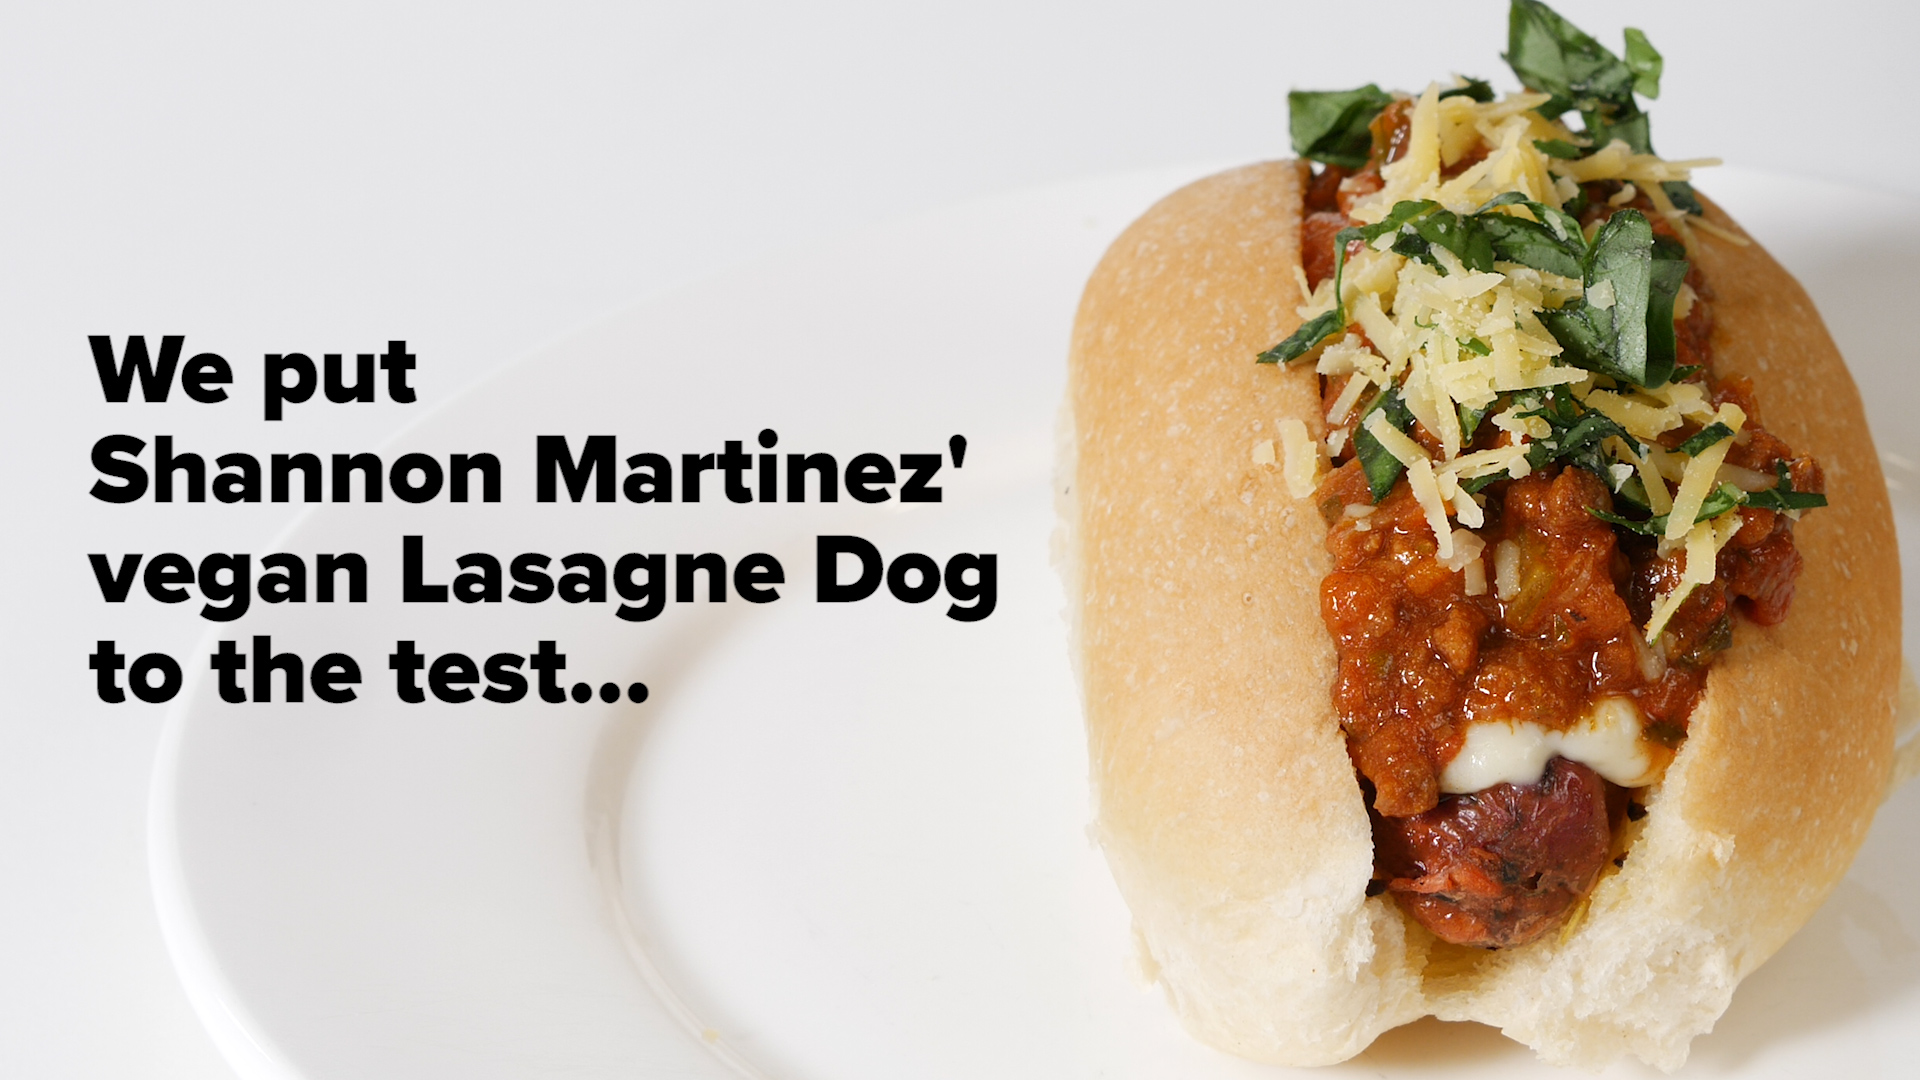 9Honey taste test Deliveroo's vegan Lasagne Dog